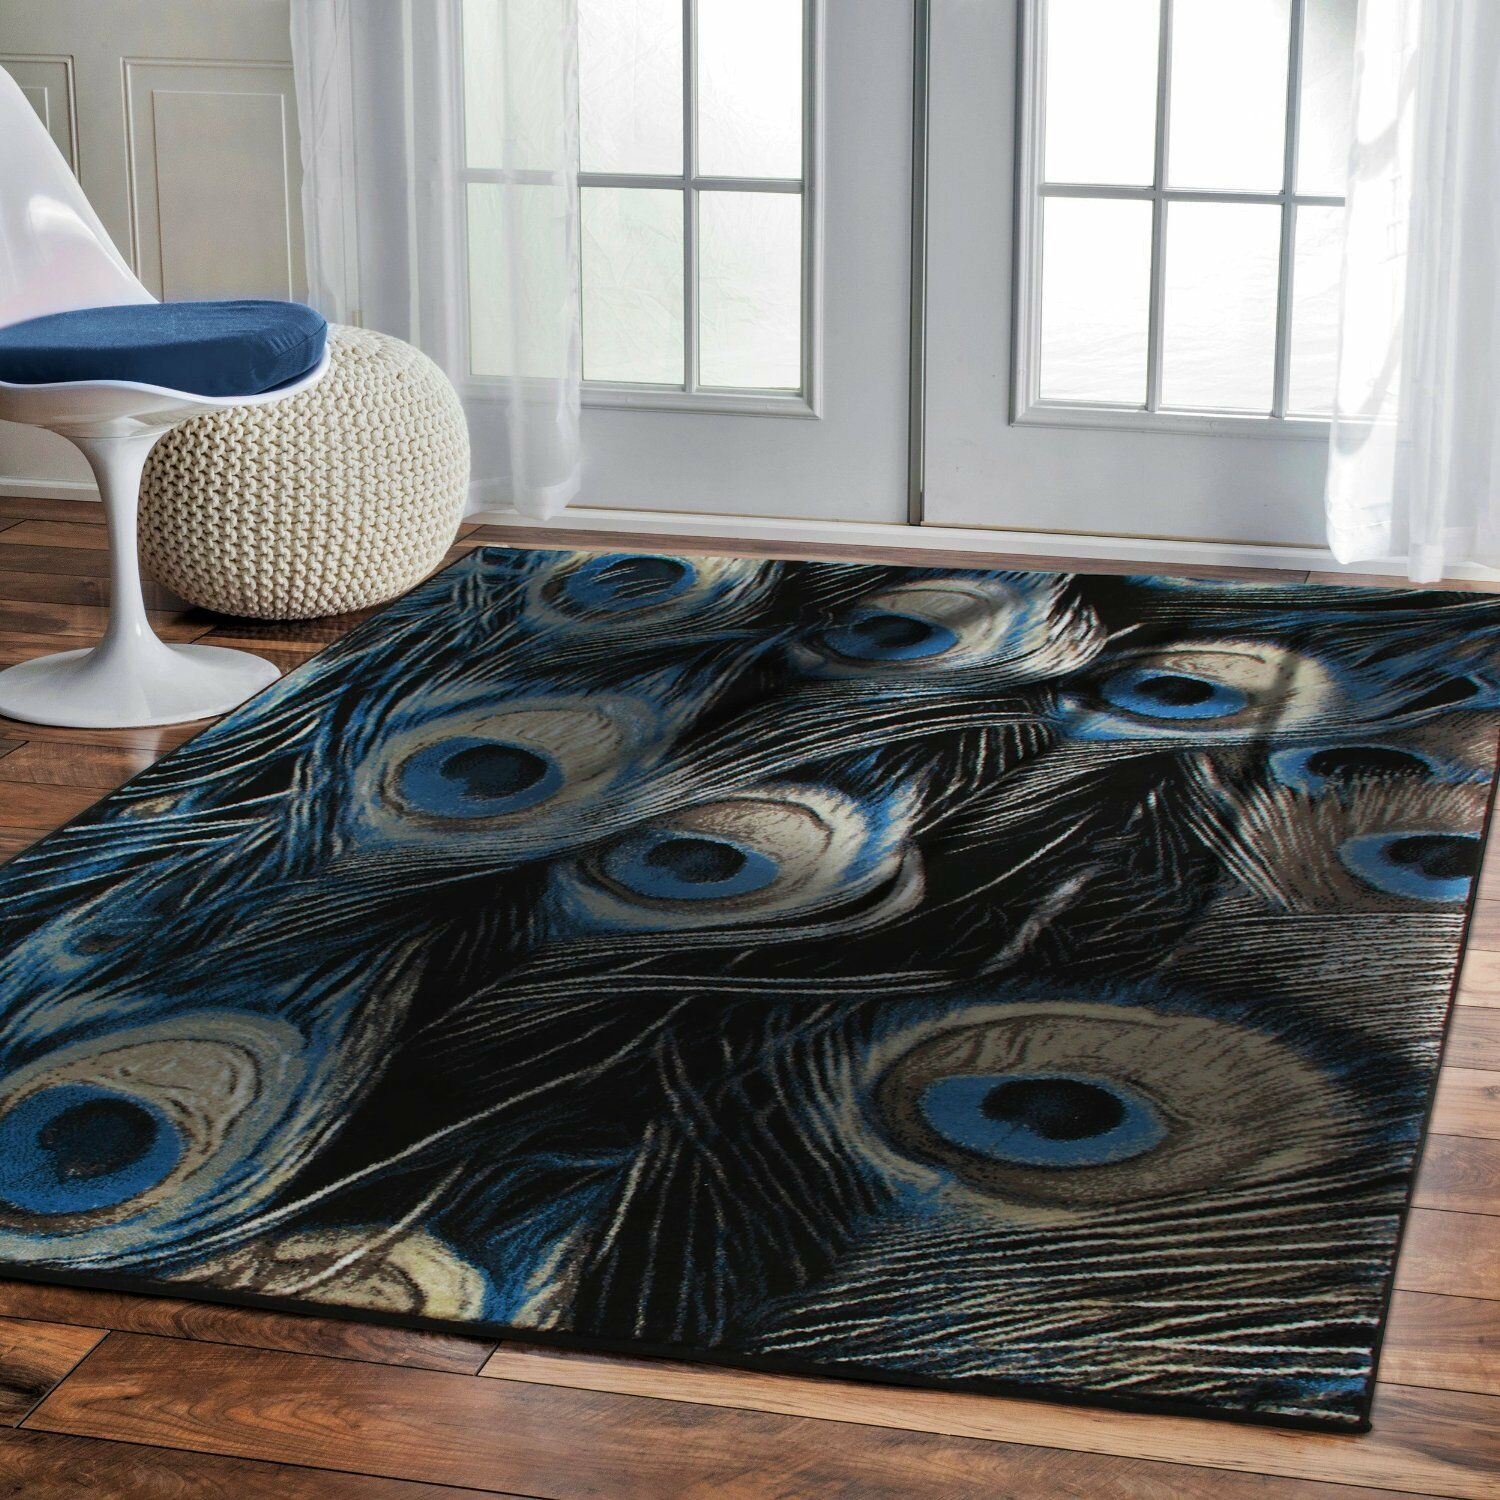 Luxury 8x11 contemporary rug for living room black rug for Garden room 2x3